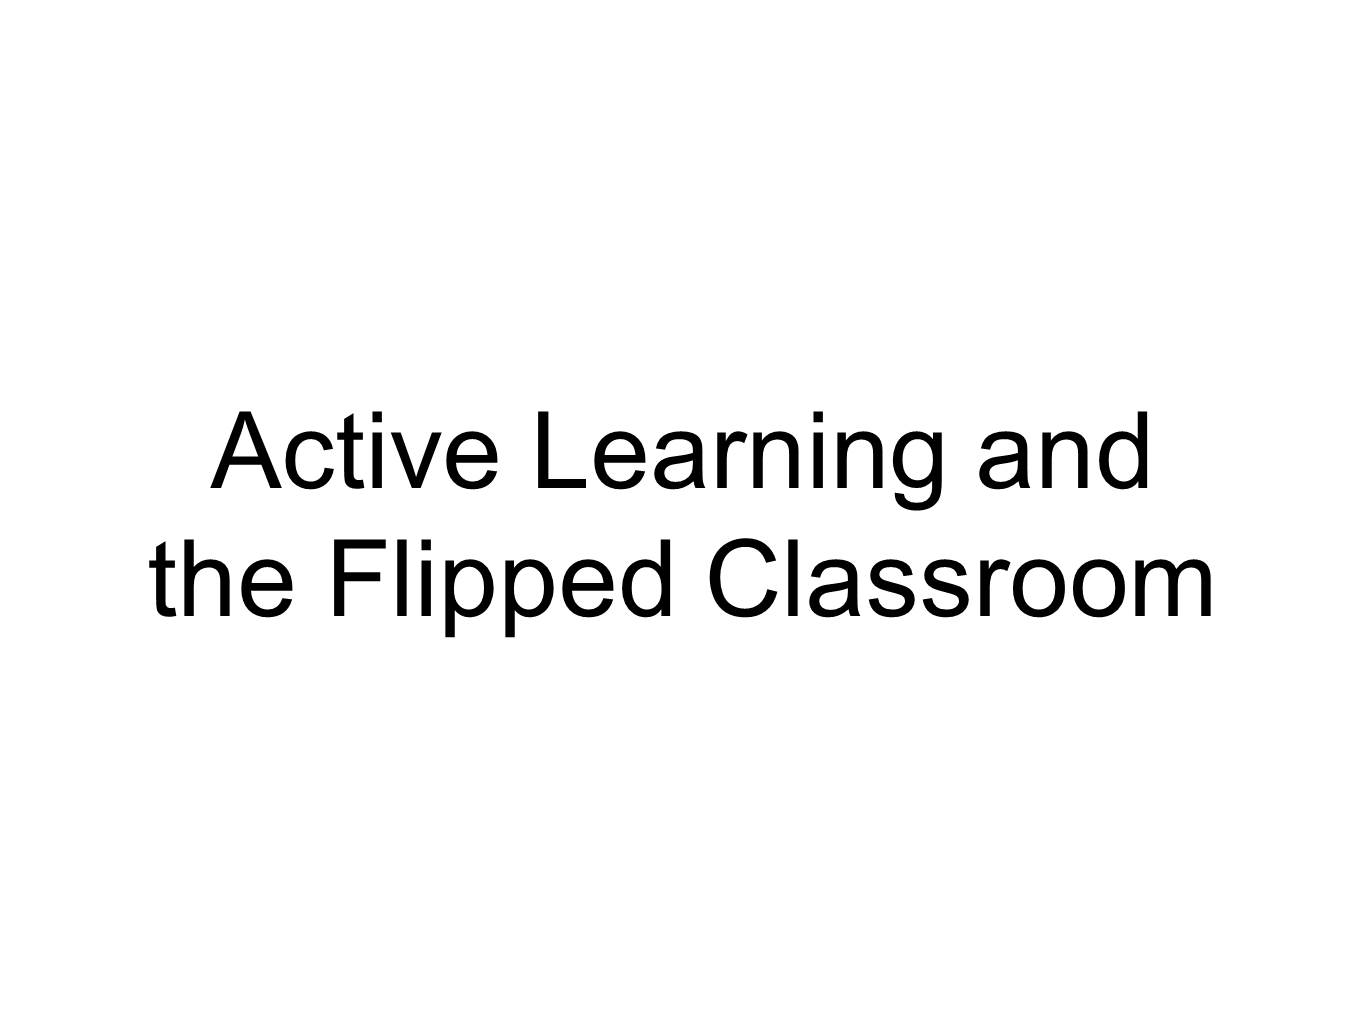 Practical Applications of Flipped Class Techniques